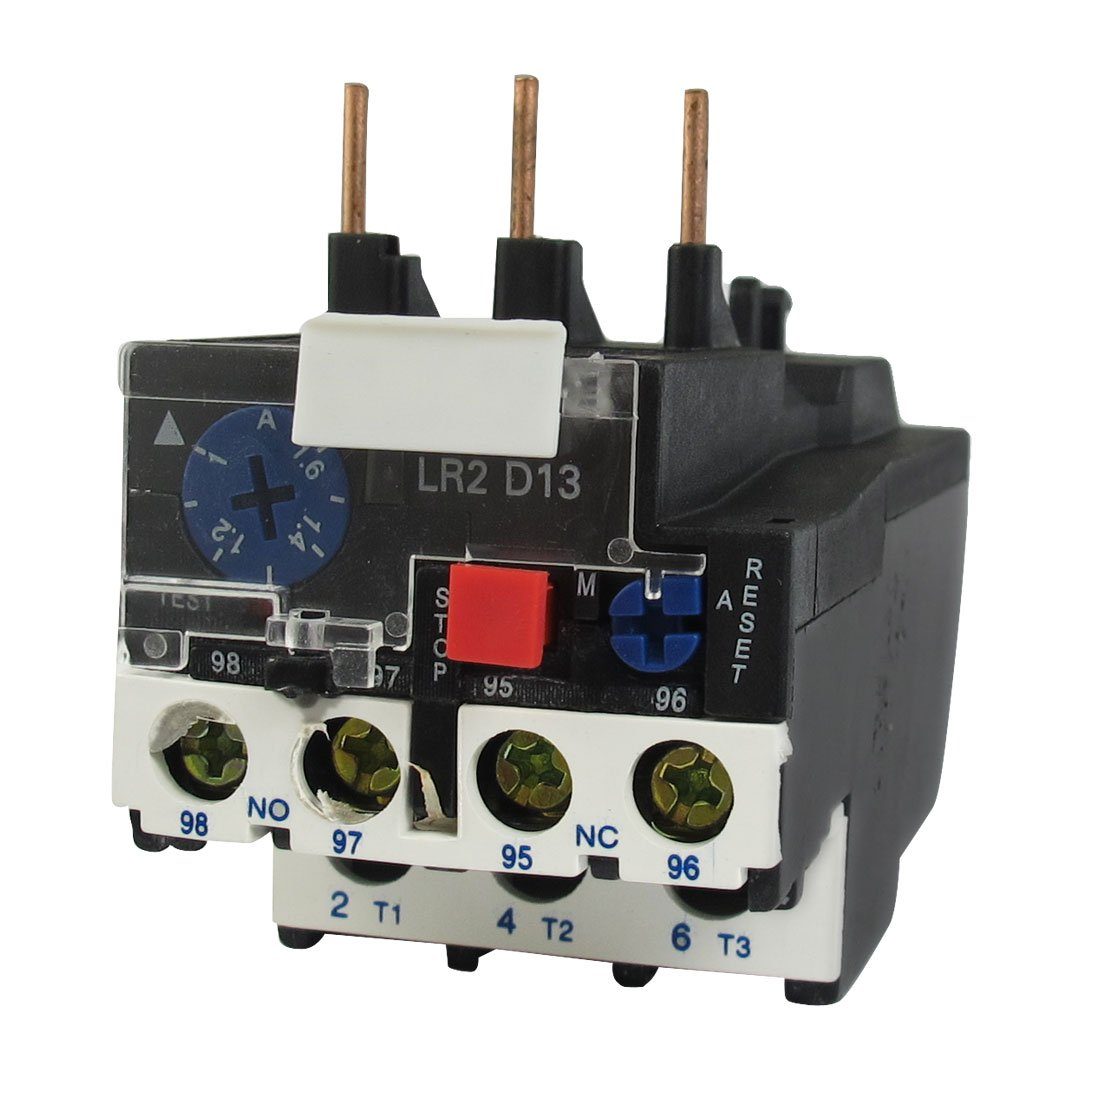 LR2-13 1.6A 1-1.6A 3-Phase 1NO 1NC Electric Thermal Overload Relay